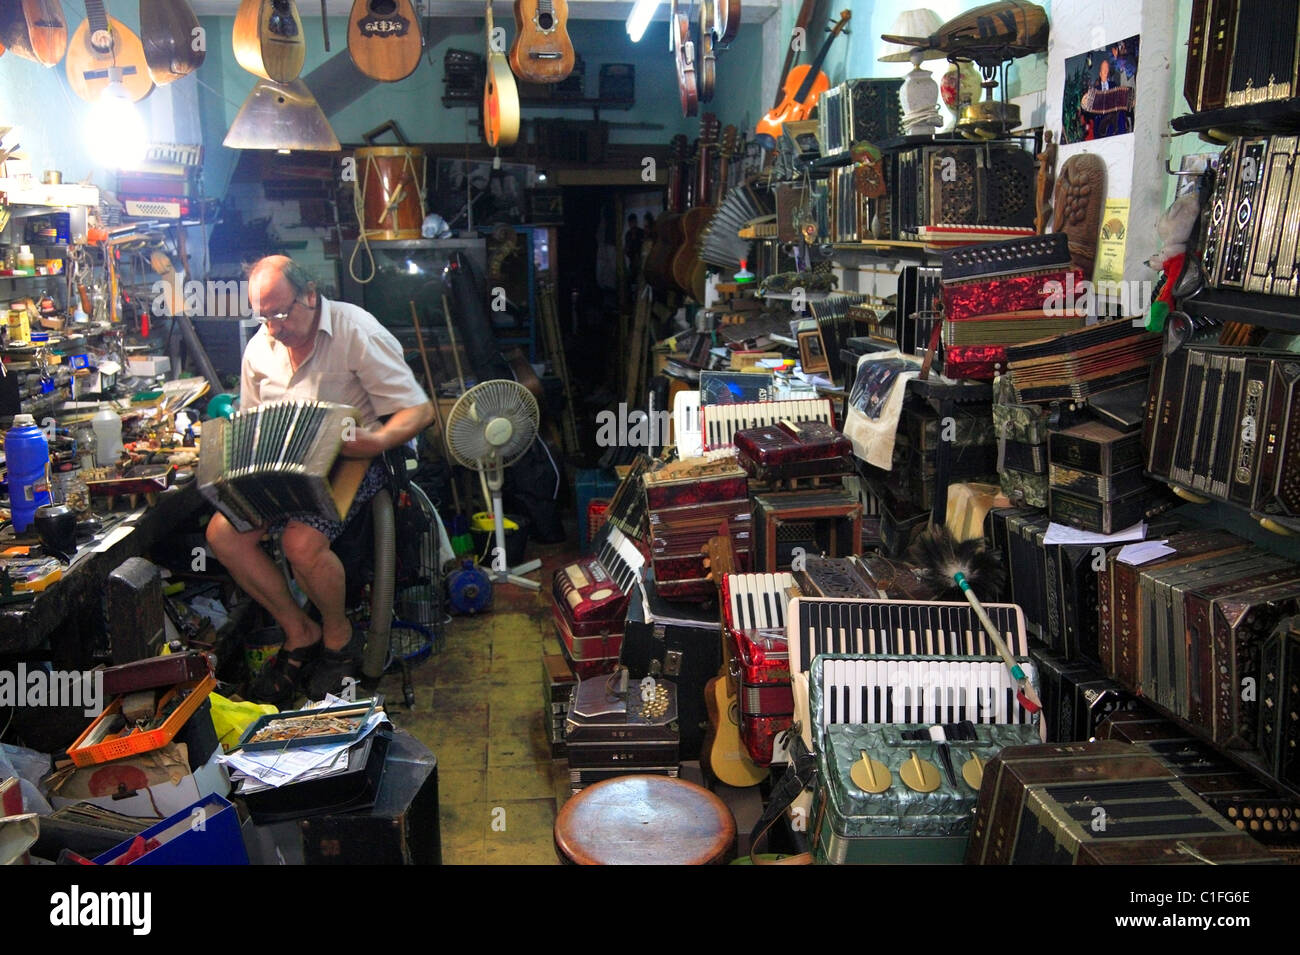 'bandoneon Store': tango luthier working at his studio in montevideo, Uruguay. - Stock Image